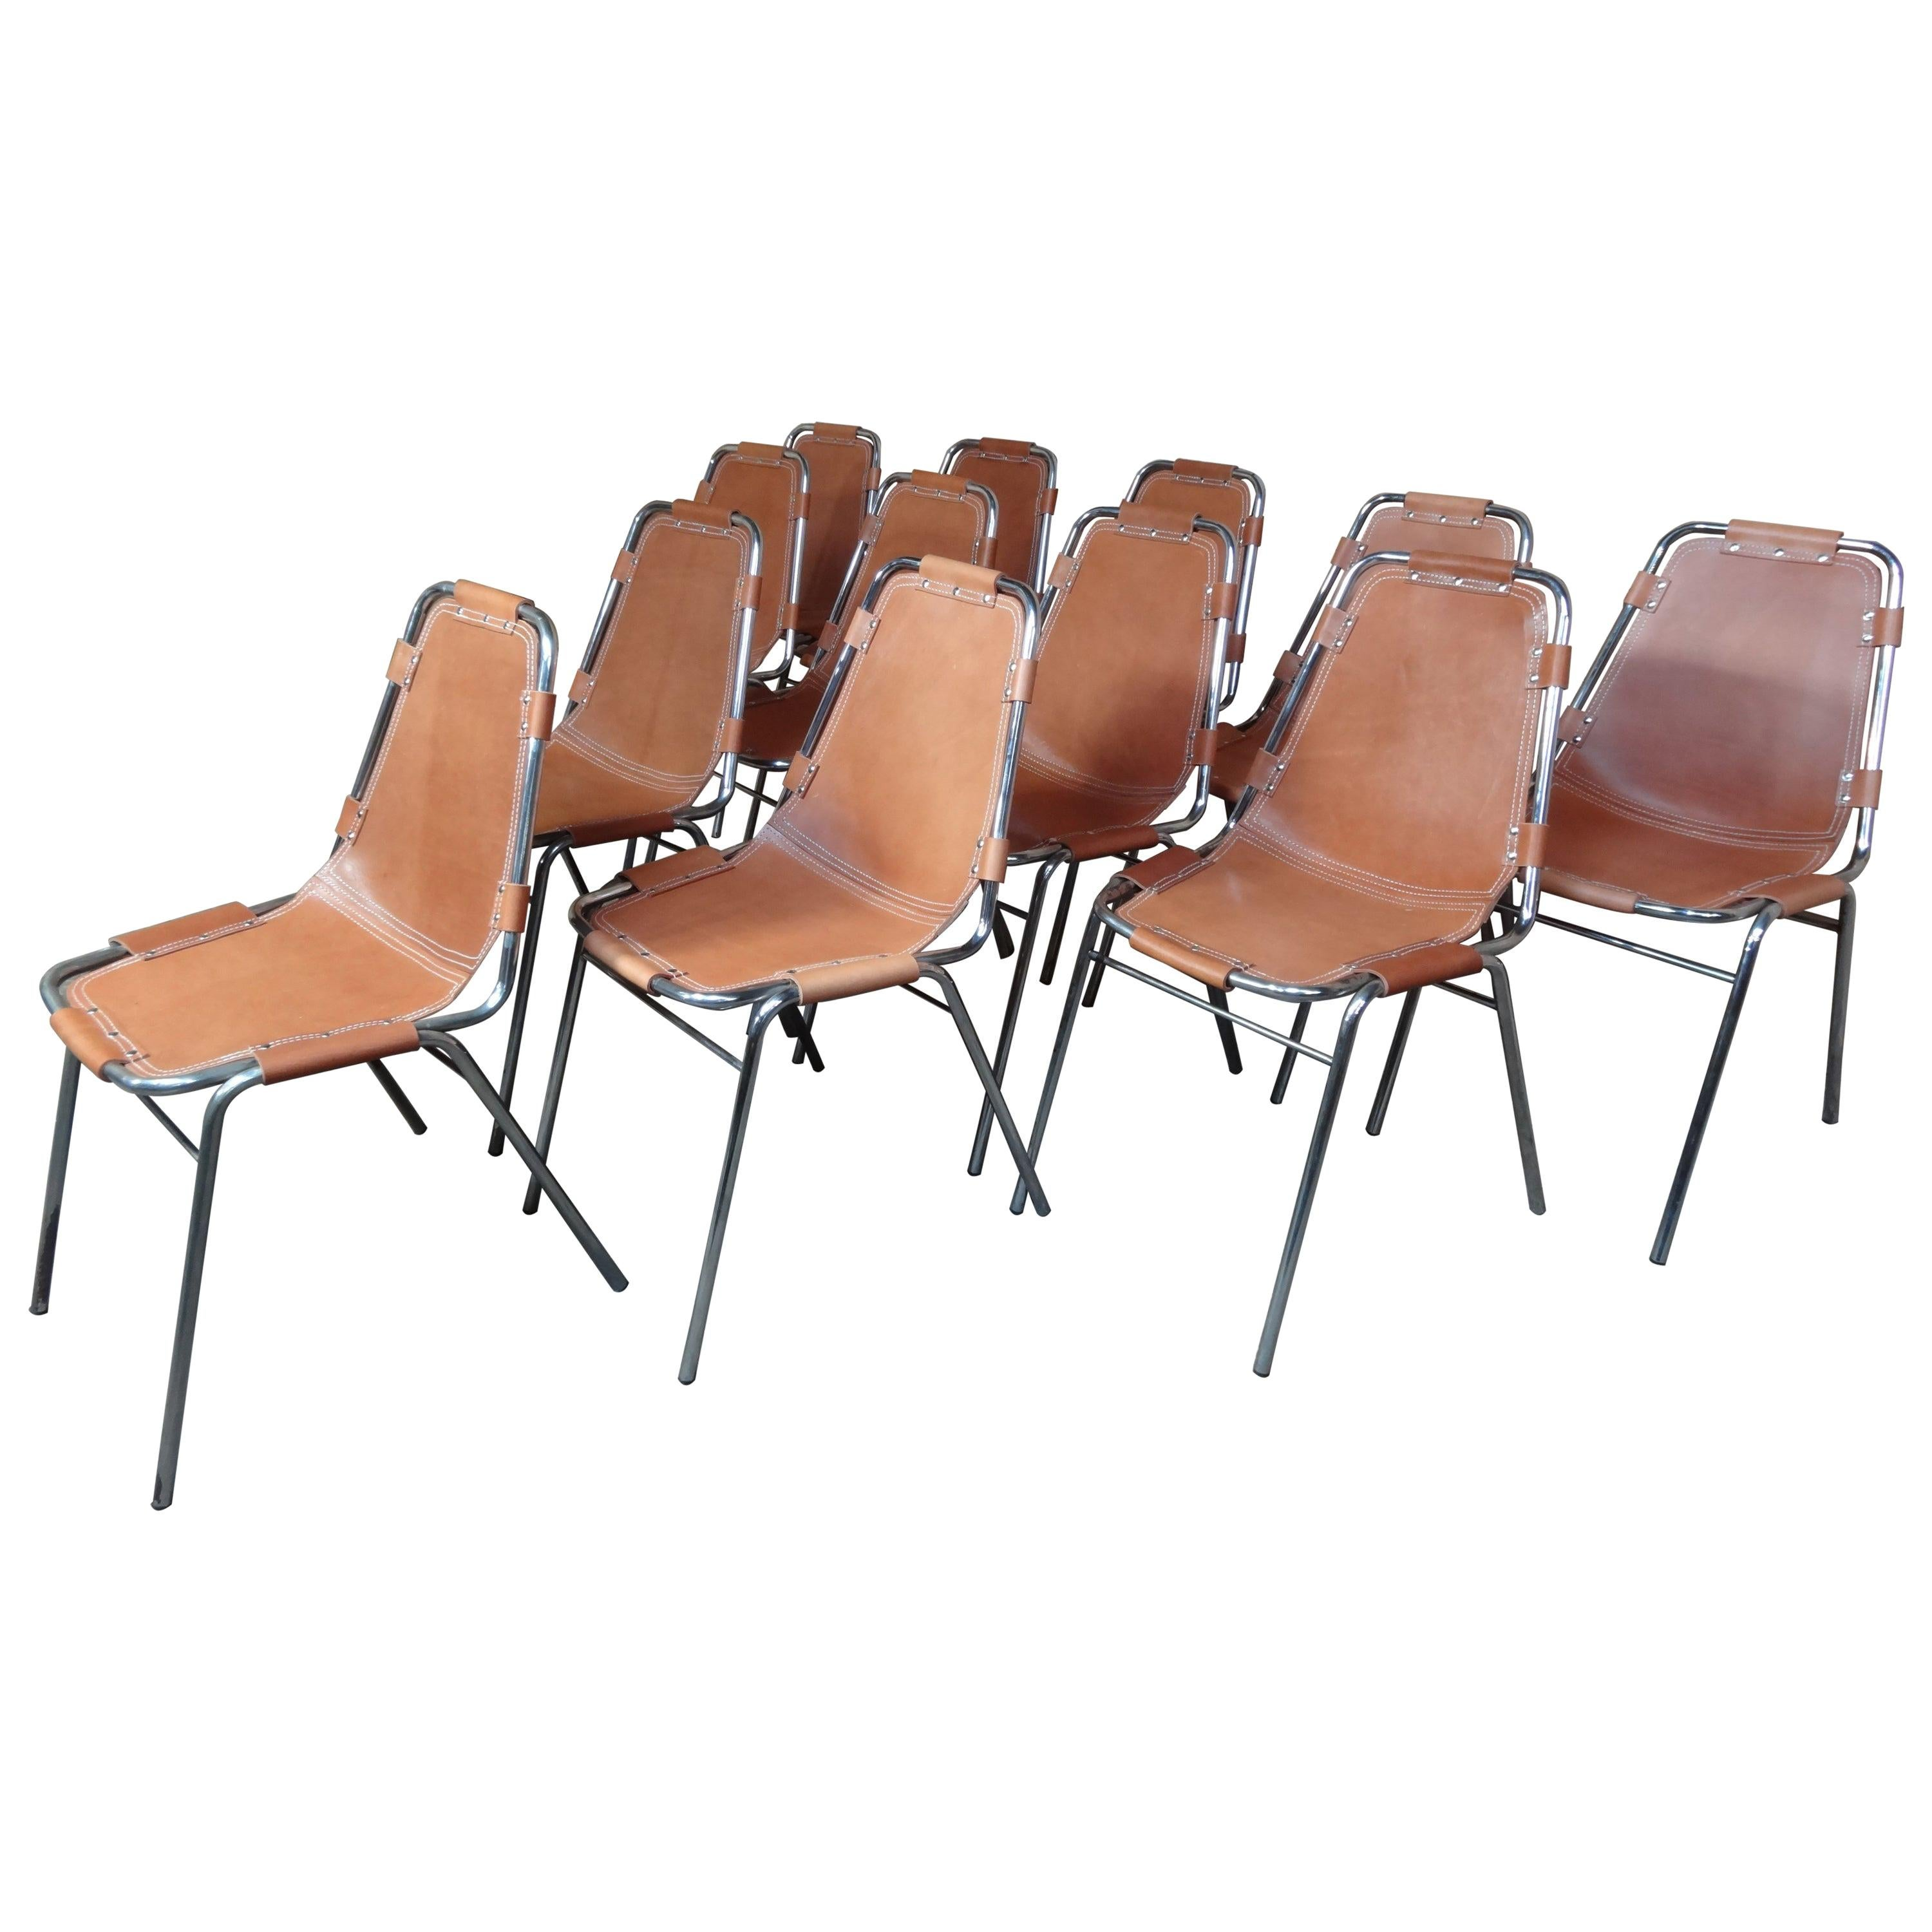 Selected by Charlotte Perriand for Les Arcs Ski Resort, 12 Leather Dining Chairs